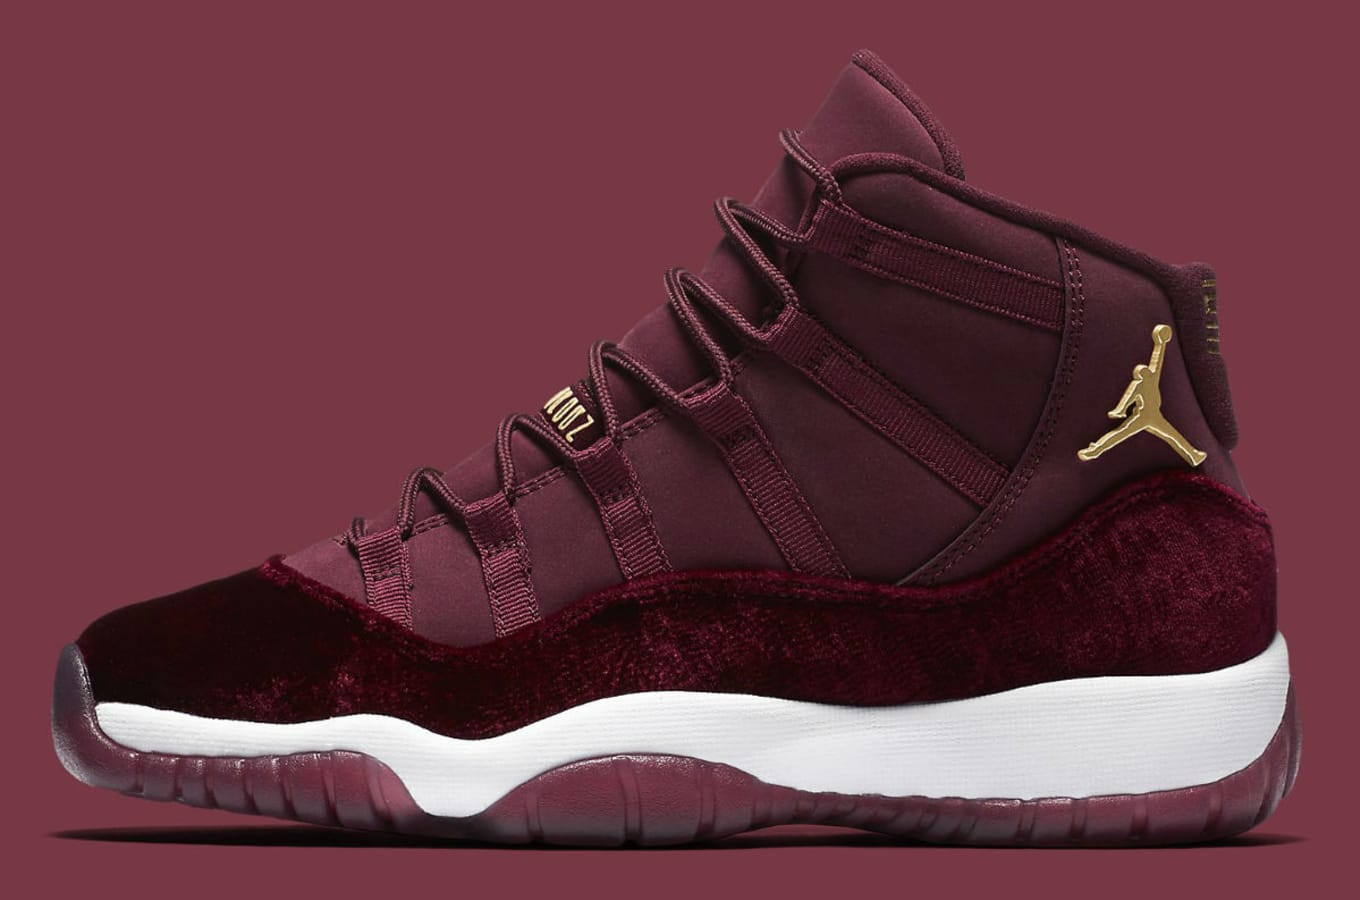 a087224cef35 Air Jordan 11 GG Red Velvet Heiress Release Date 852625-650